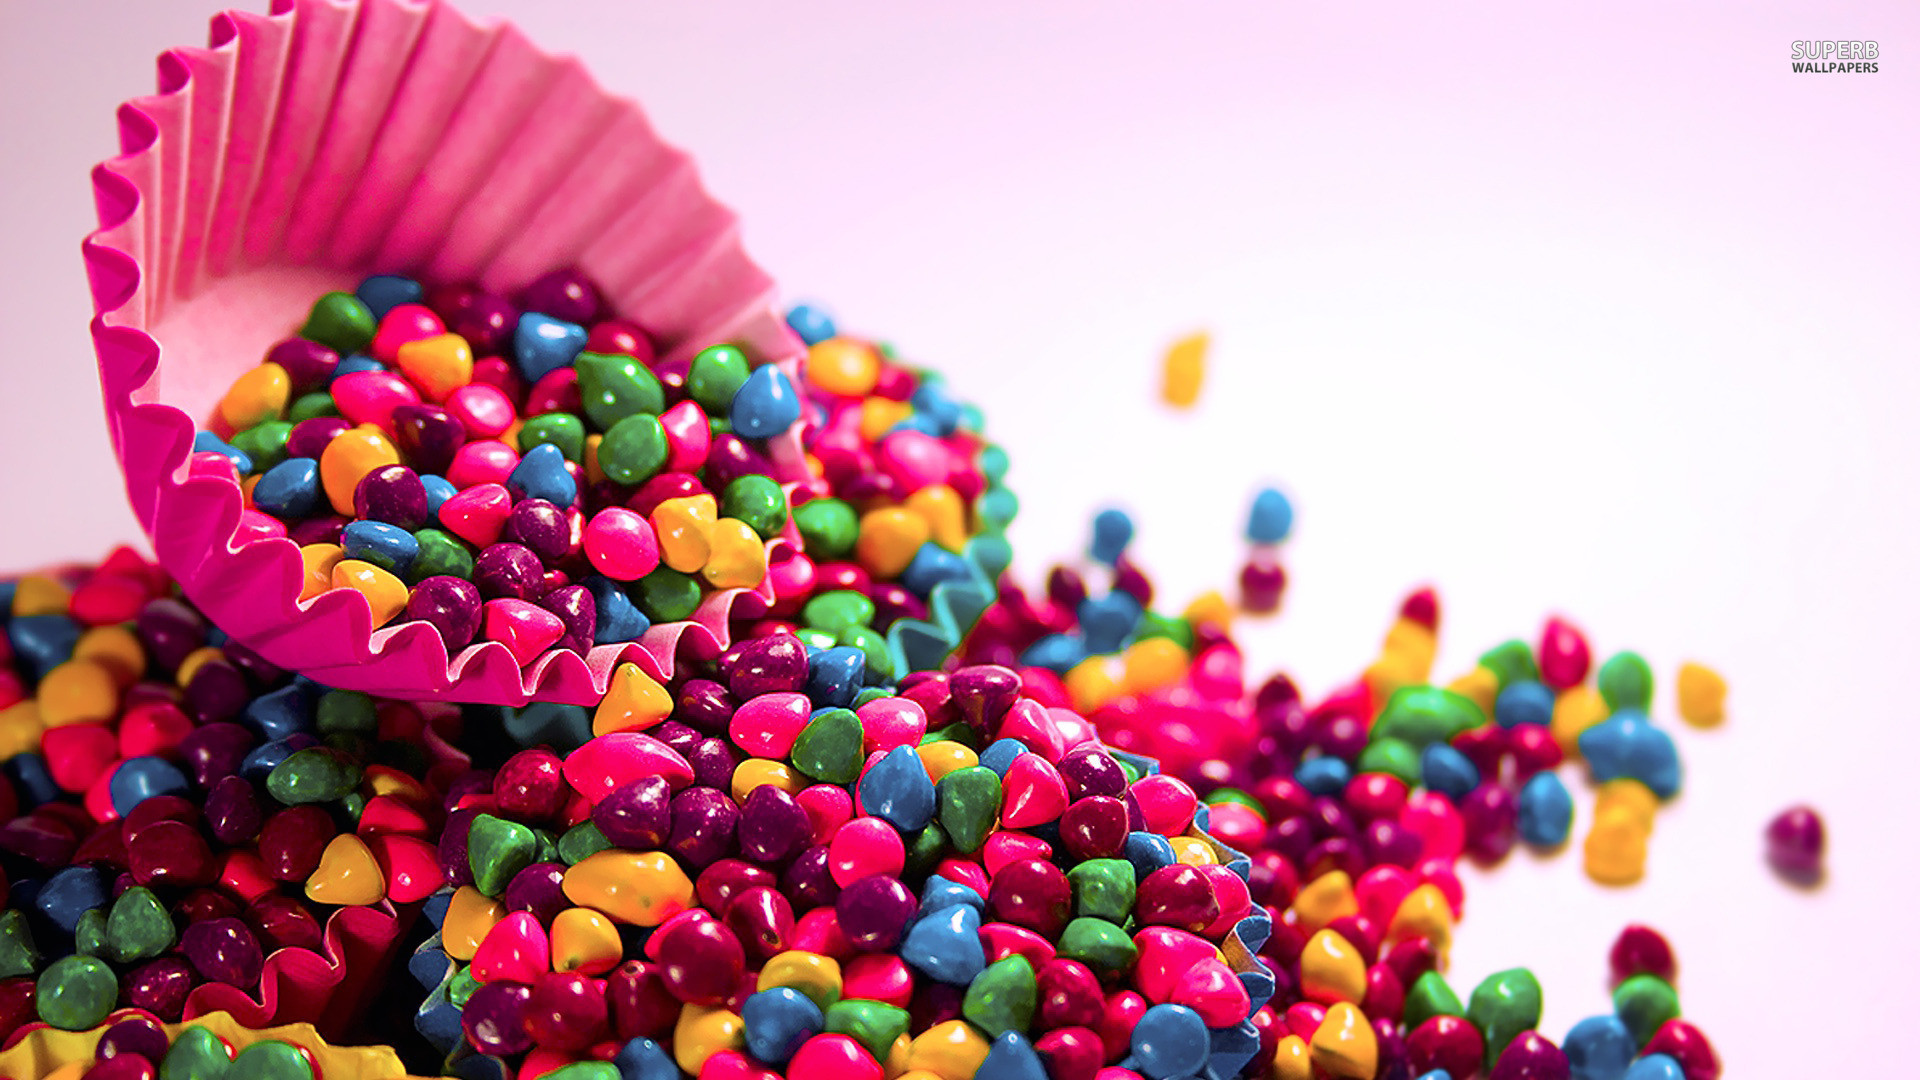 Mm Candy Wallpaper 56 images